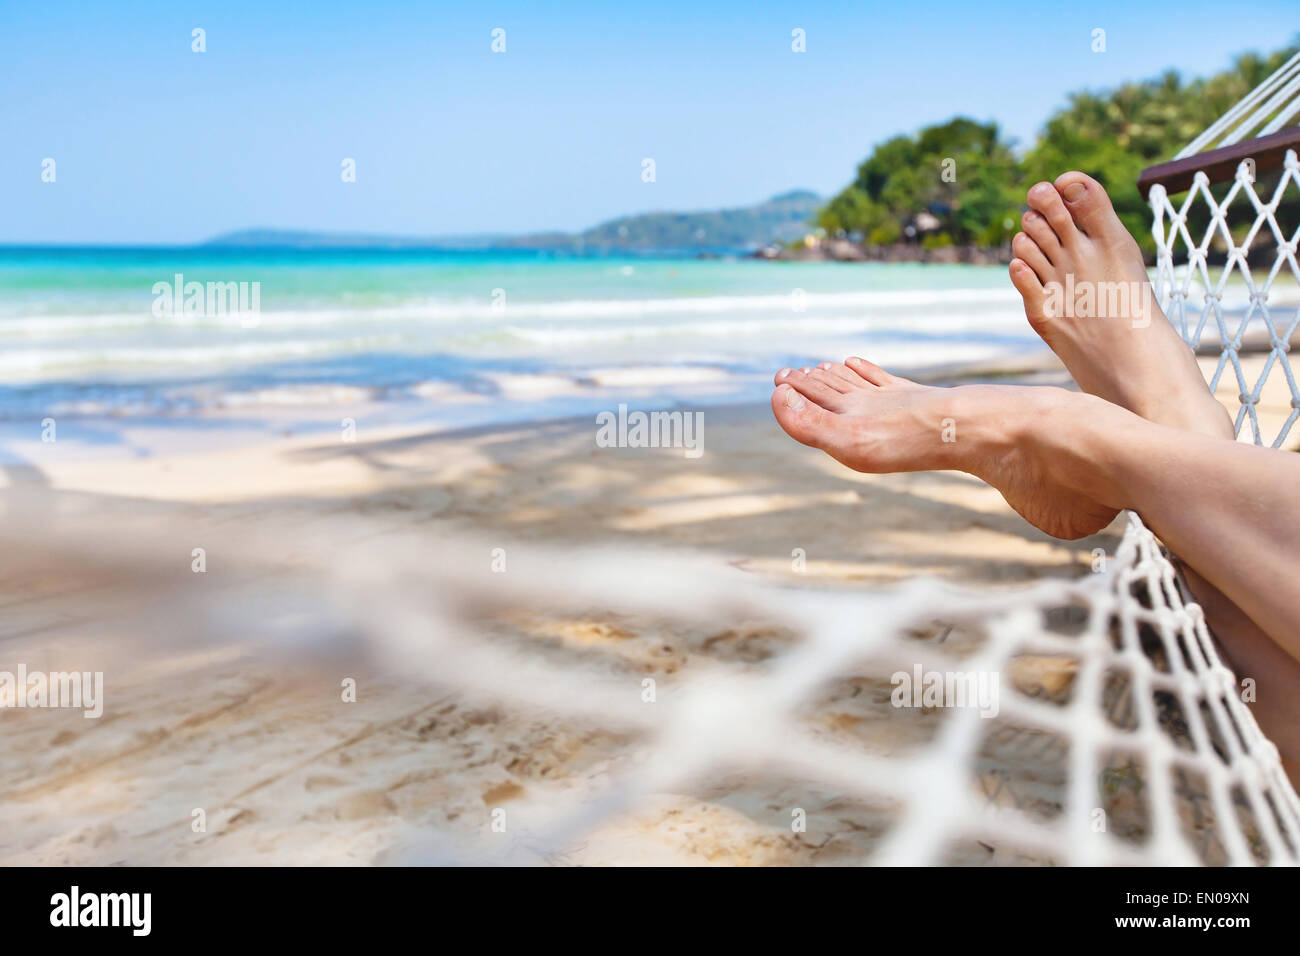 relaxing in hammock on the beautiful paradise beach - Stock Image